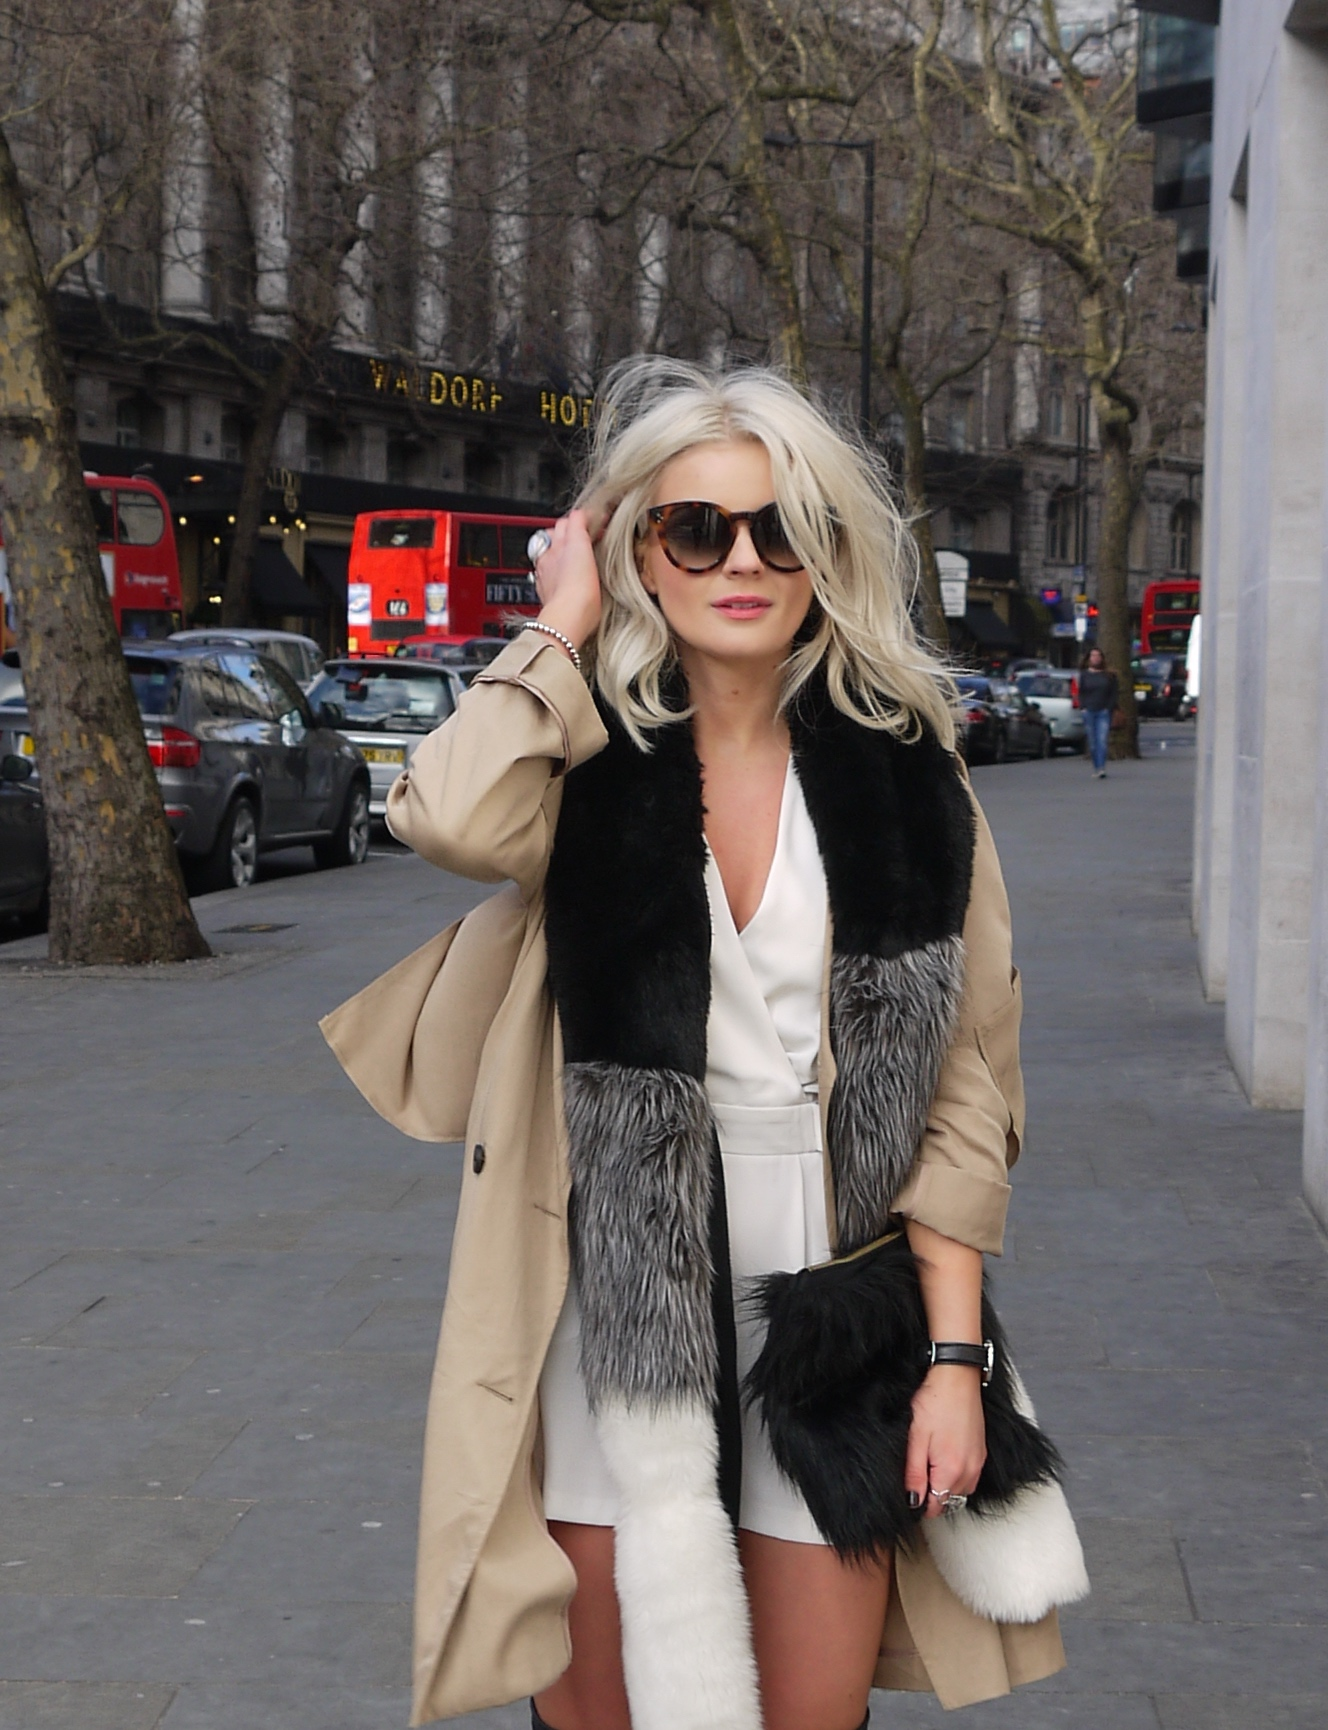 celine glasses, topshop camel duster coat, faux fur, destroy boots, fashion blogger